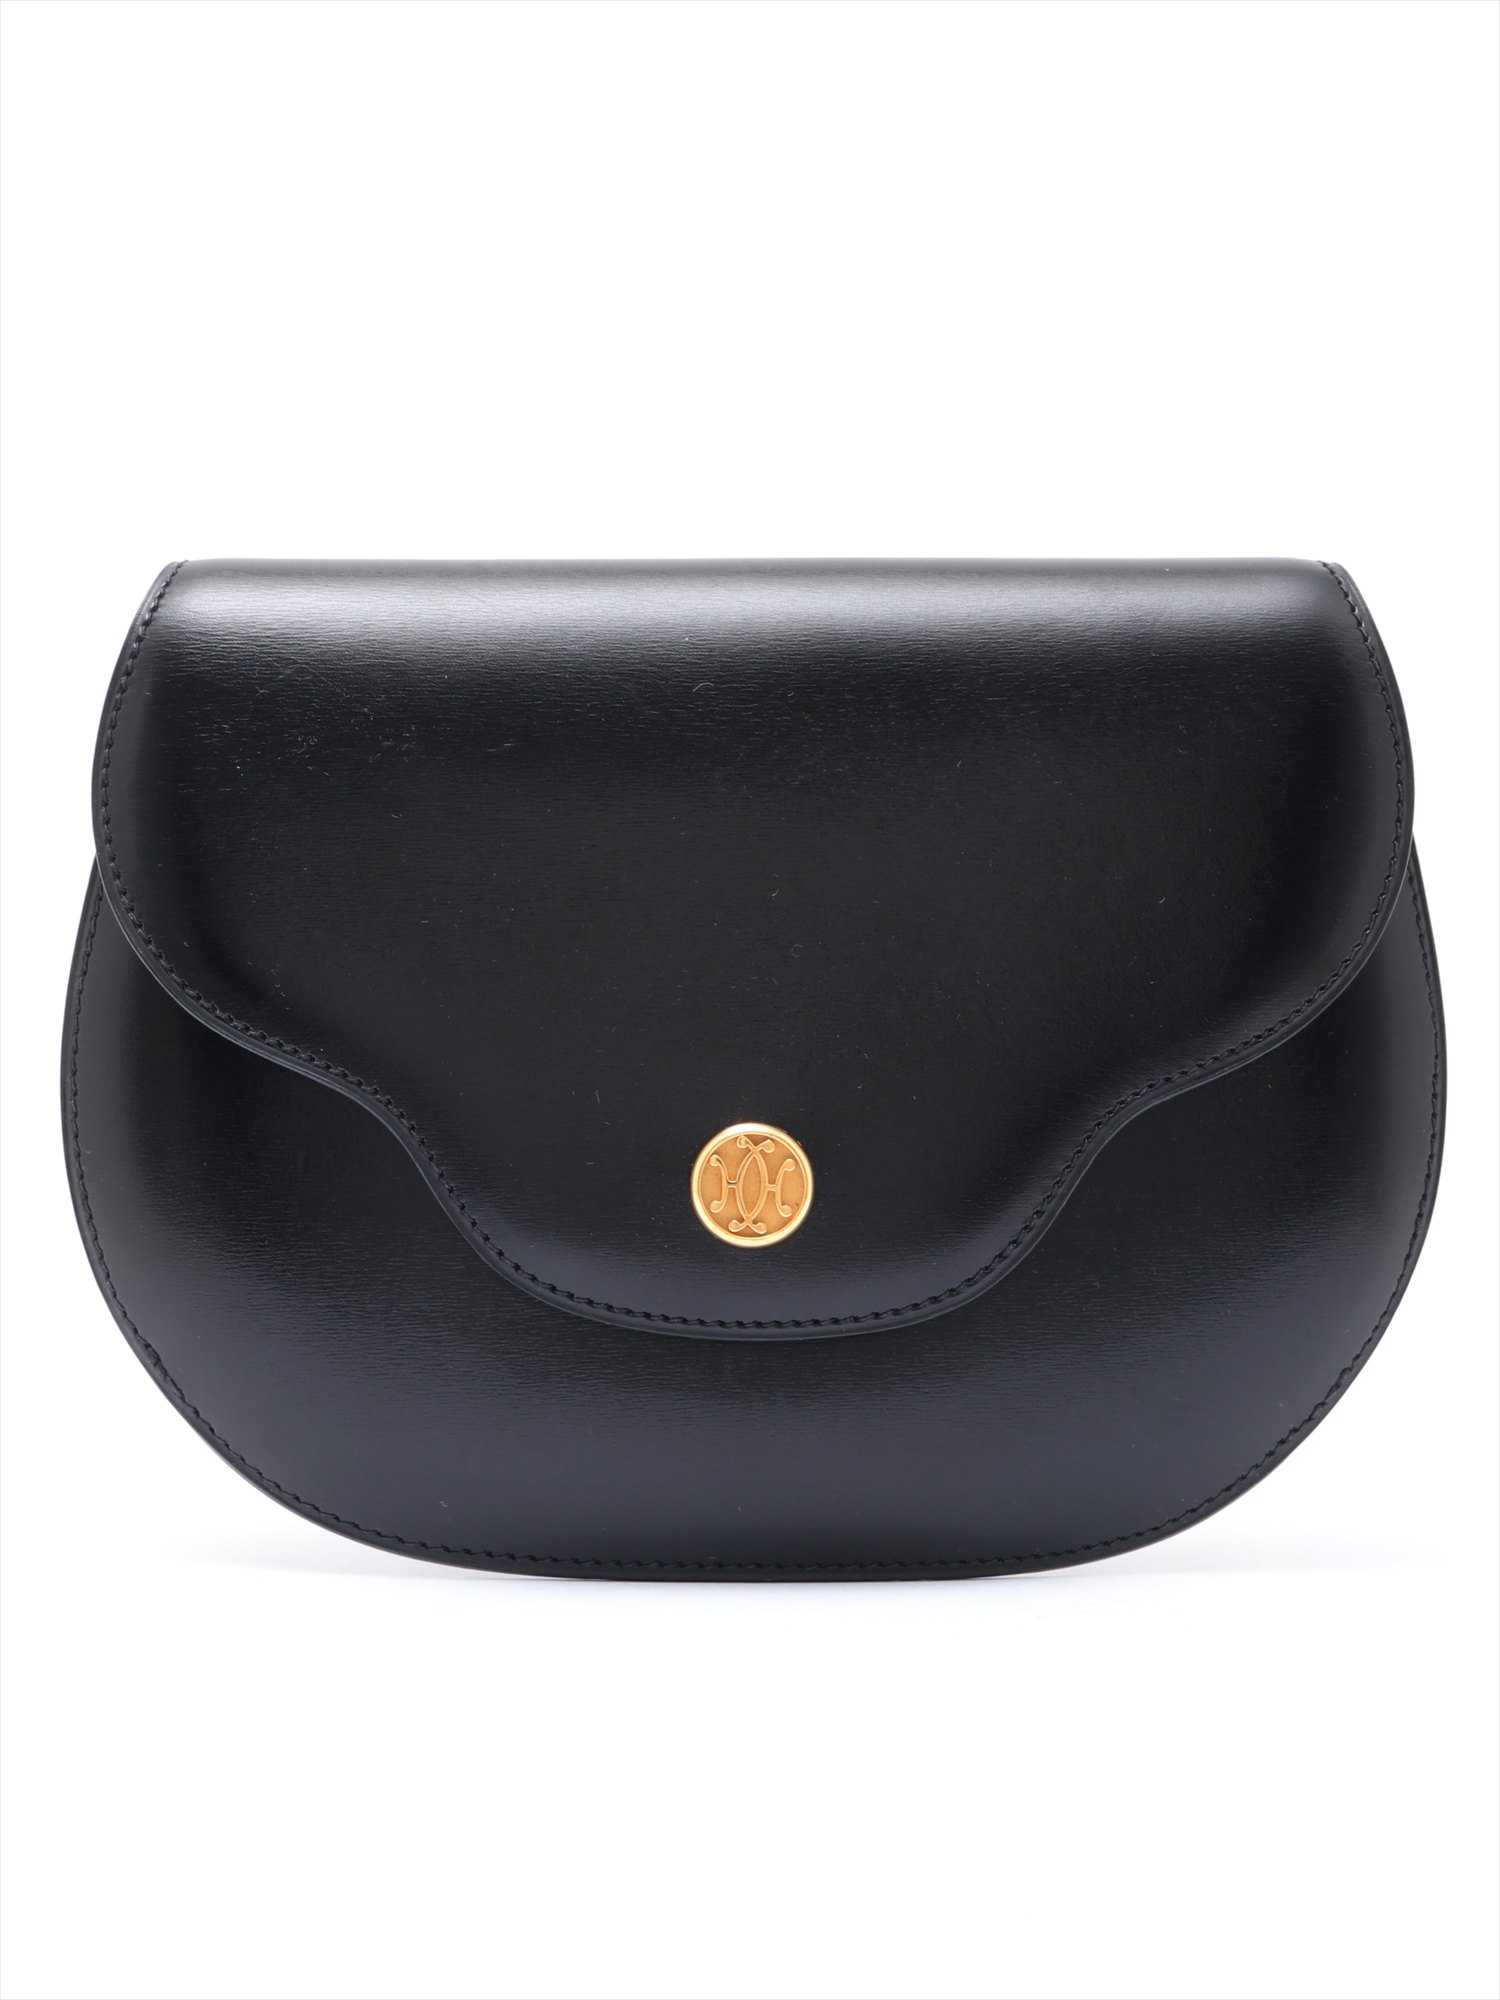 [Used goods] Hermes Paula box calf shoulder bag Black Gold Hardware